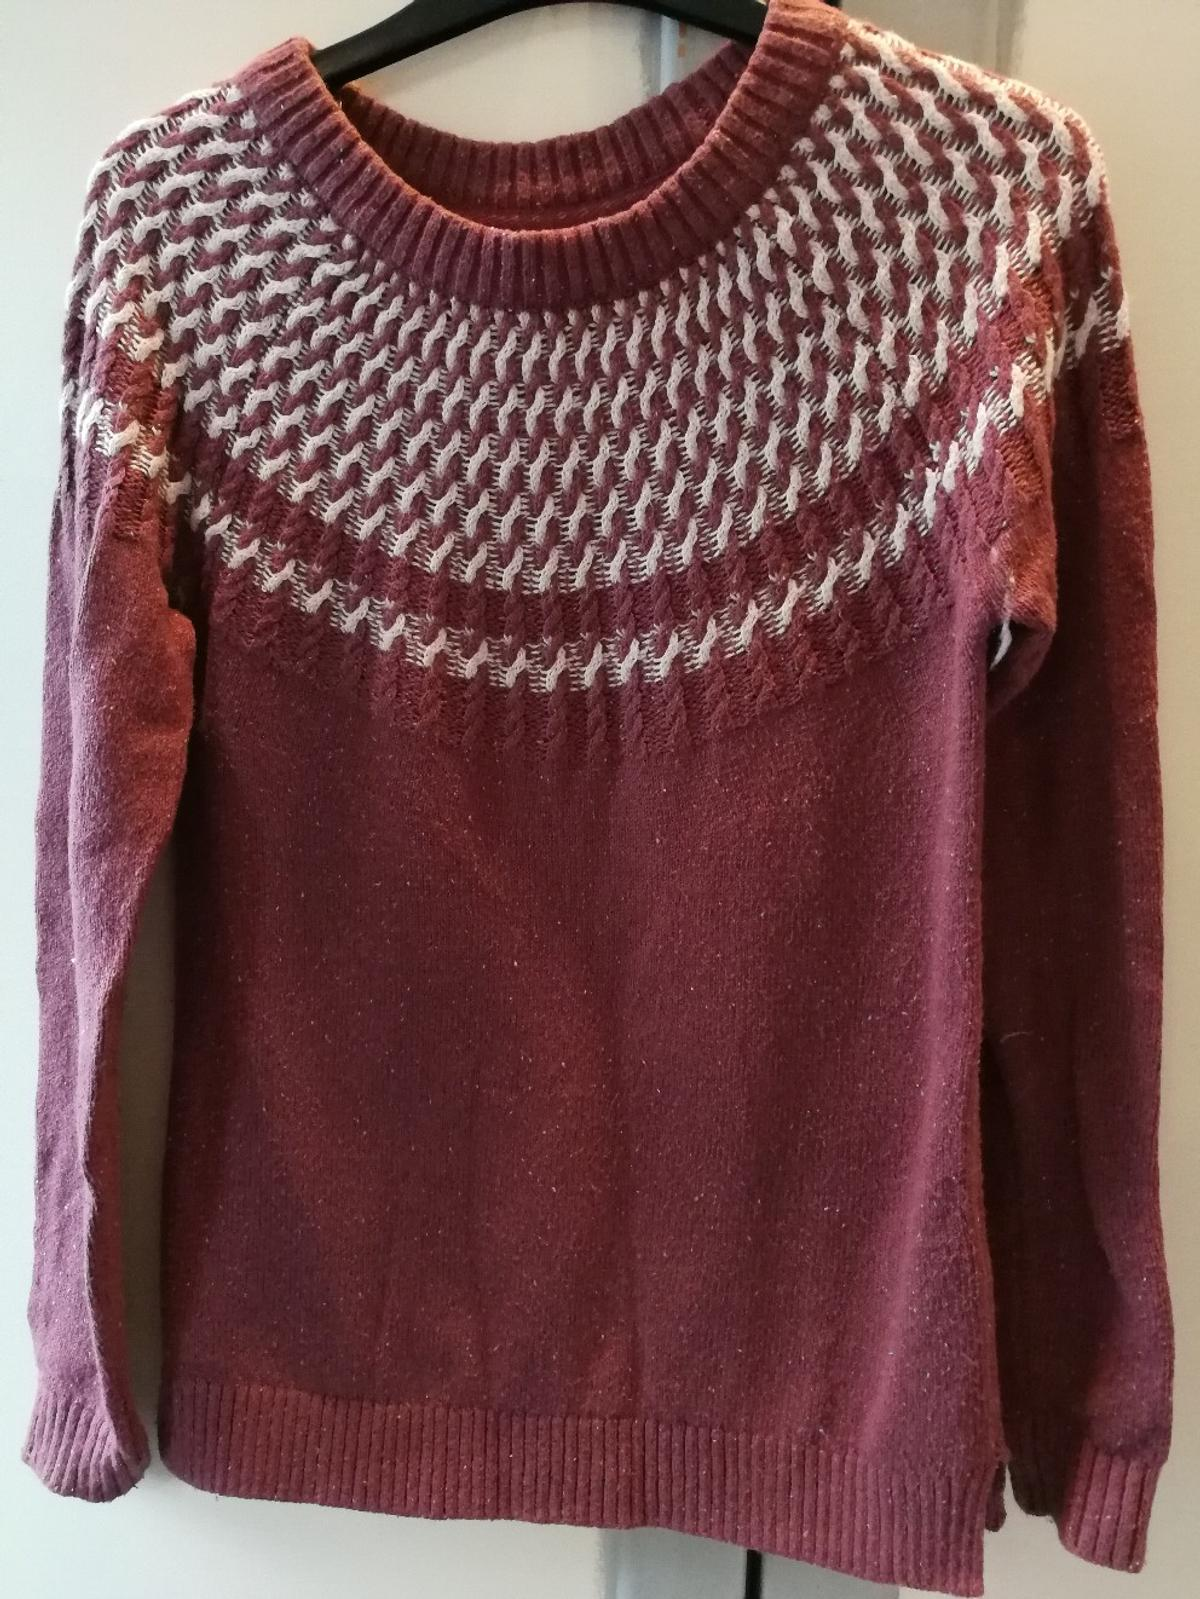 lovely warm Fat Face jumper, size 6. only worn once. available for collection or can post.